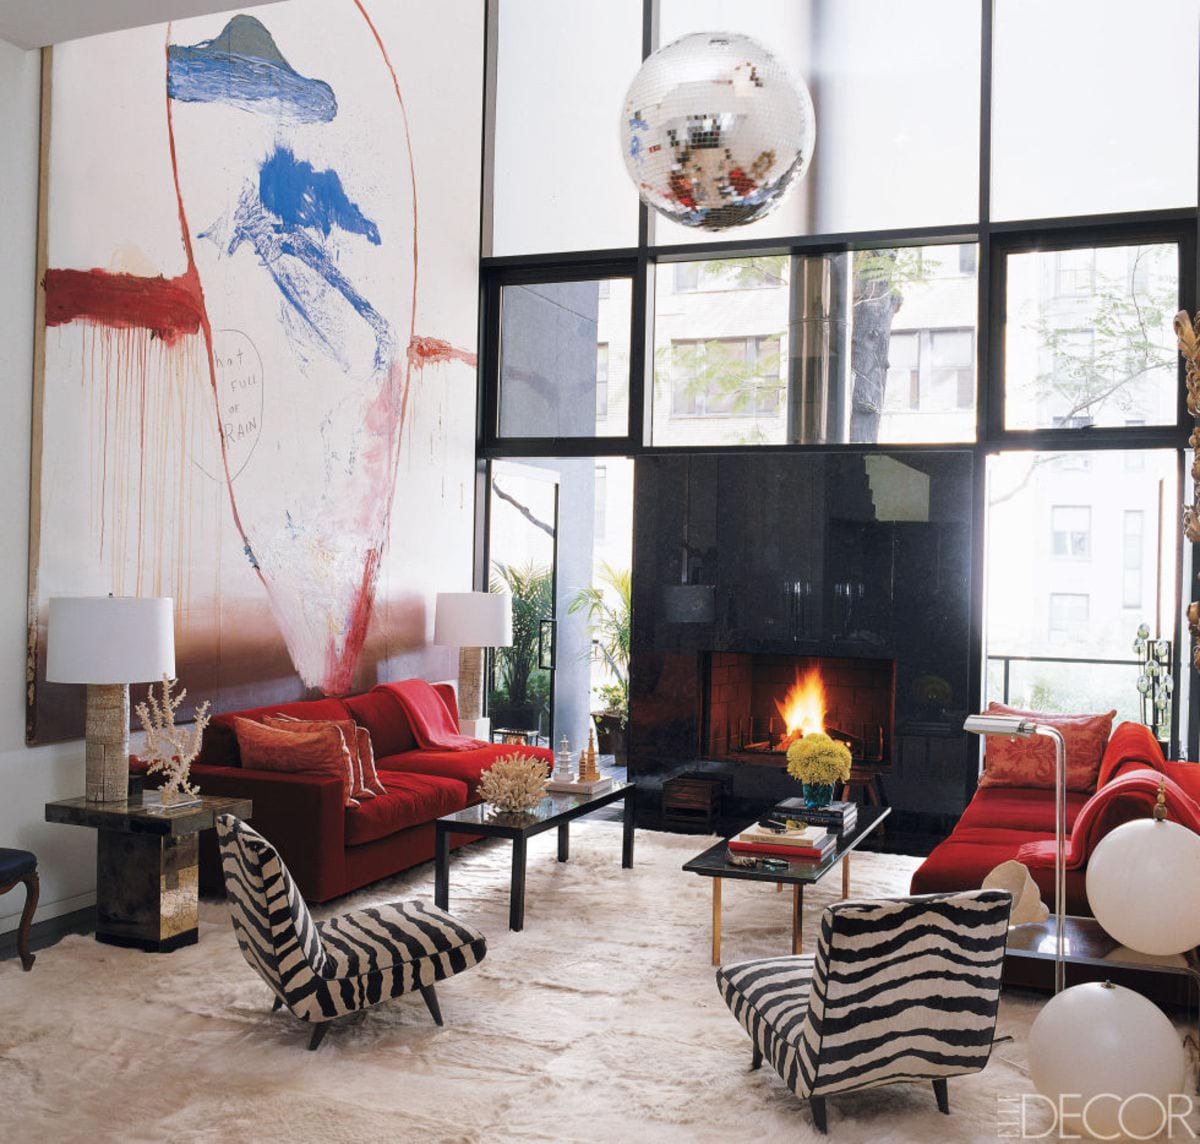 gallery-1445624173-fireplaces-026